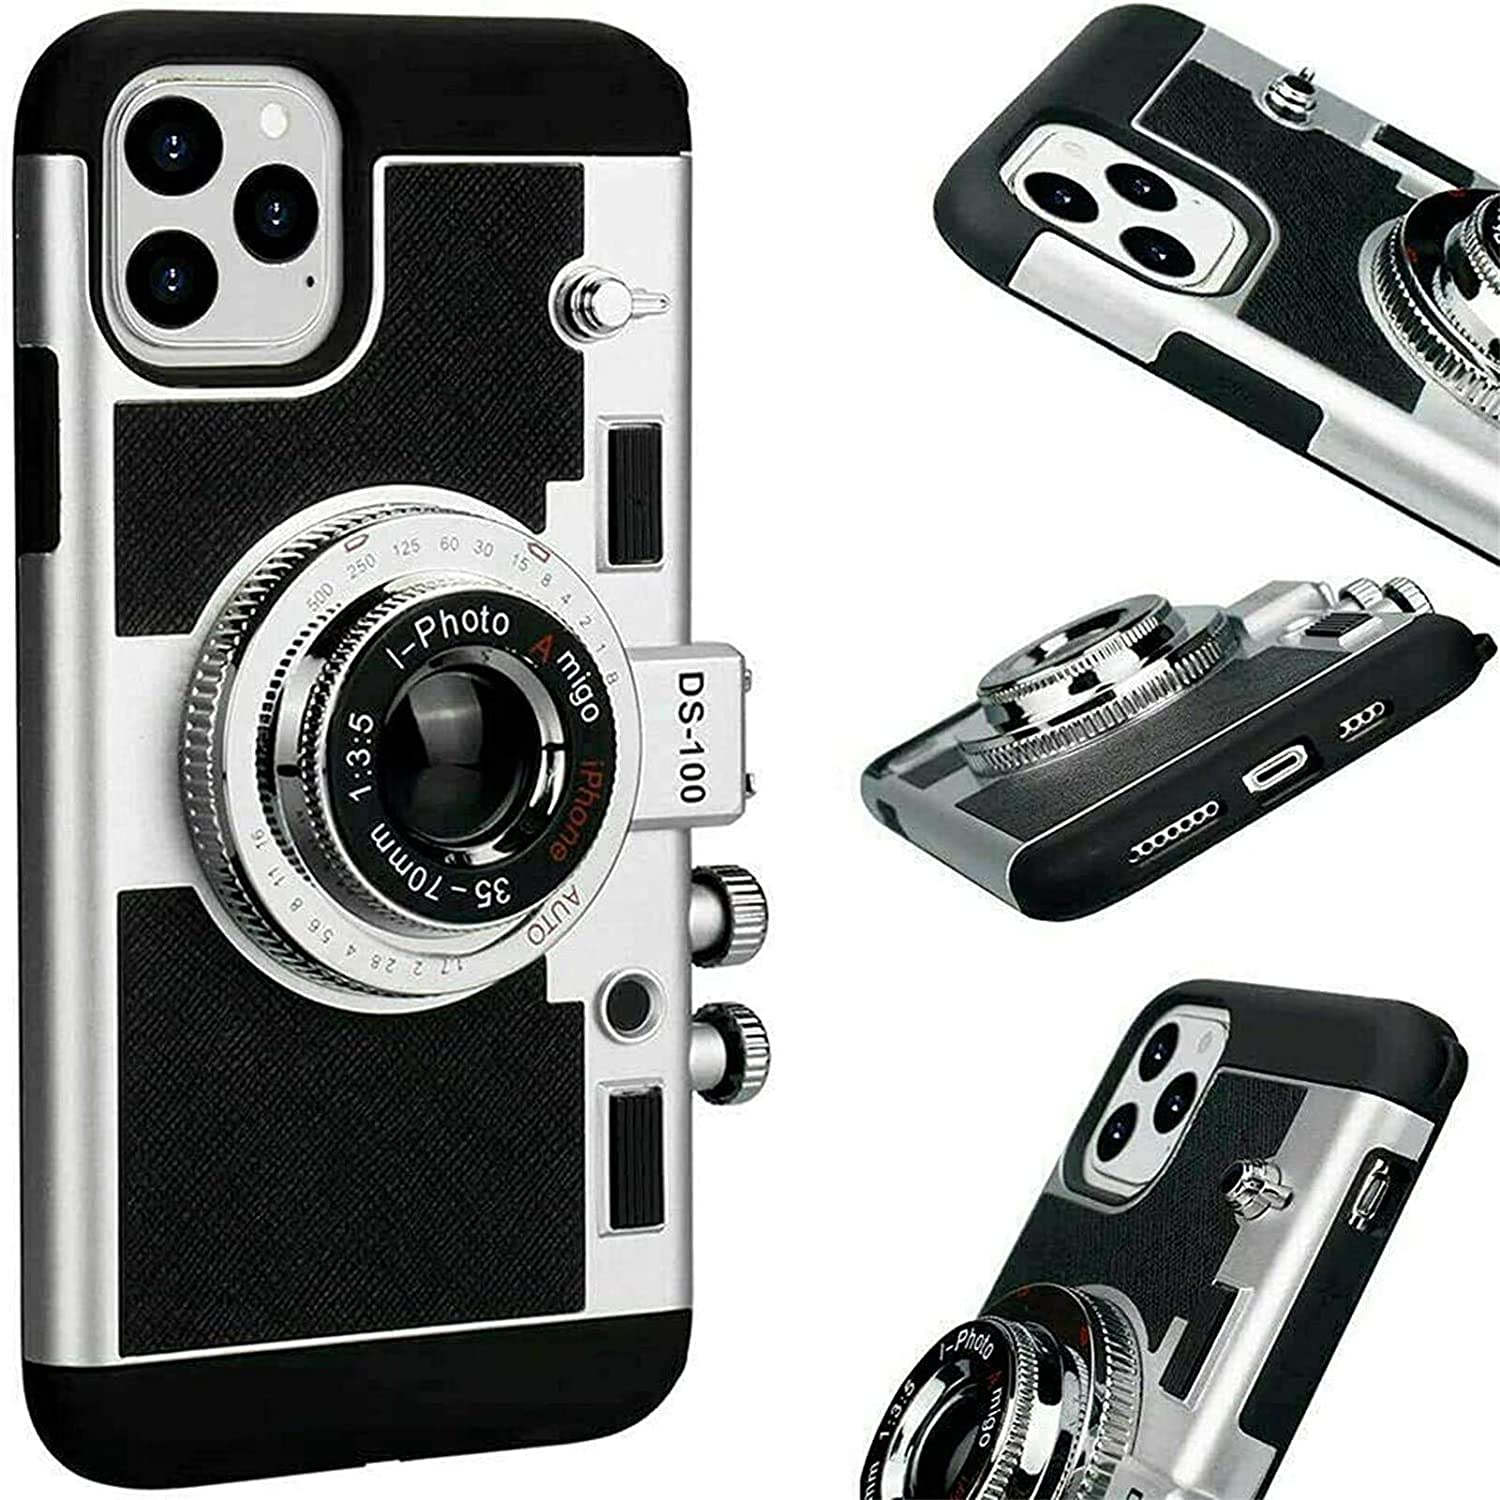 ZSDAS New Emily in Paris Phone Case Vintage Camera Compatible for iPhone 11 PRO/X/XS/MAX with Long Strap Rope,Modern 3D Vintage Style Camera Design Silicone Cover D for IP 11